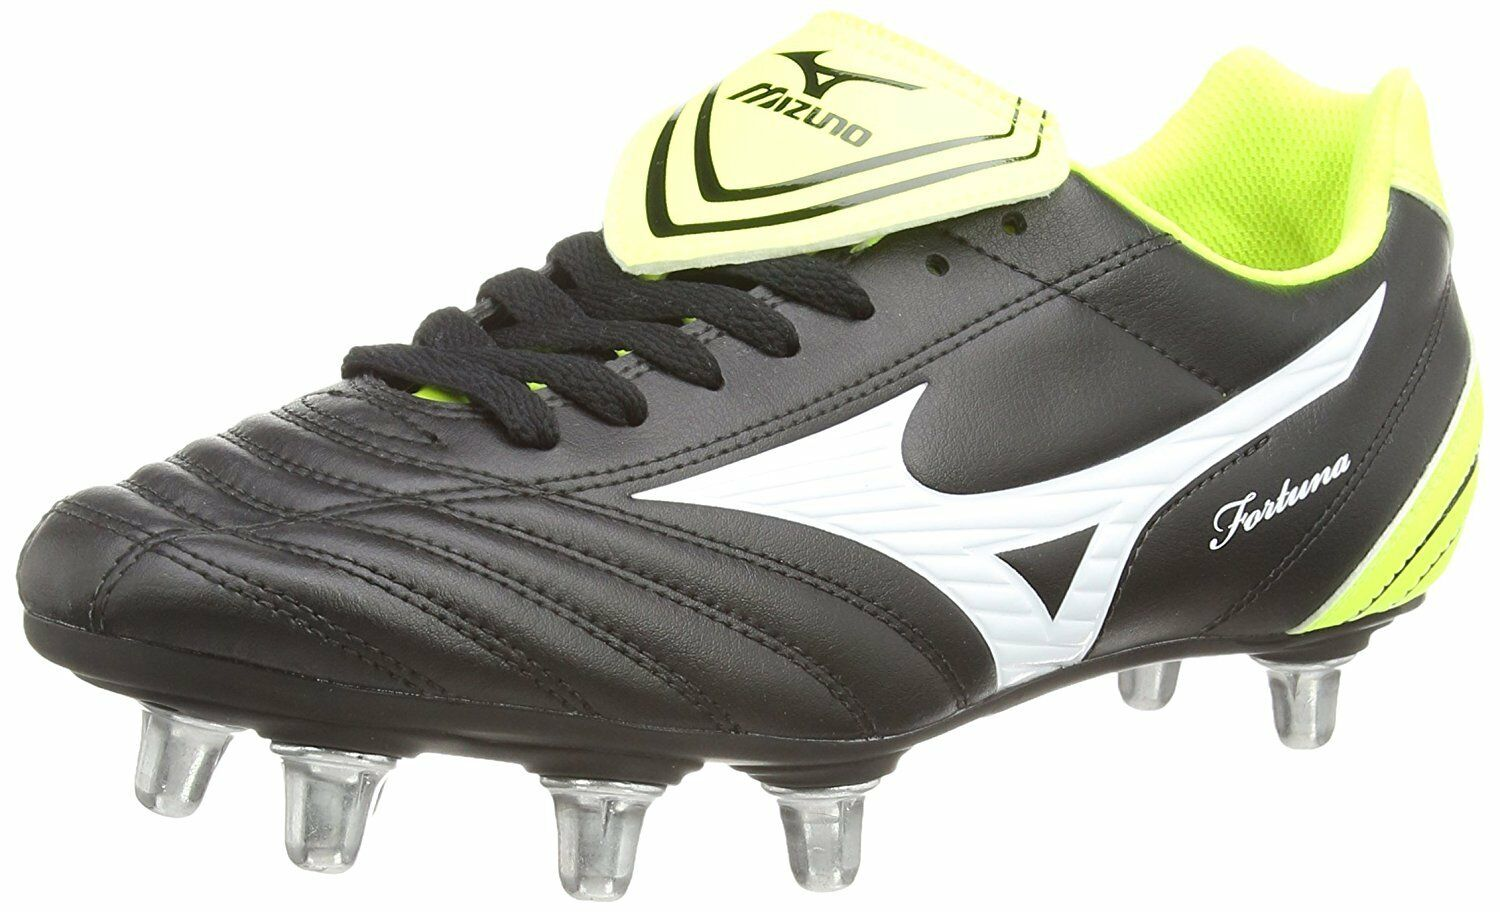 Details about Mizuno Fortuna Rugby Sp Men's Rugby Boots (BlackWhiteYellow) 7 UK (40 12 EU)